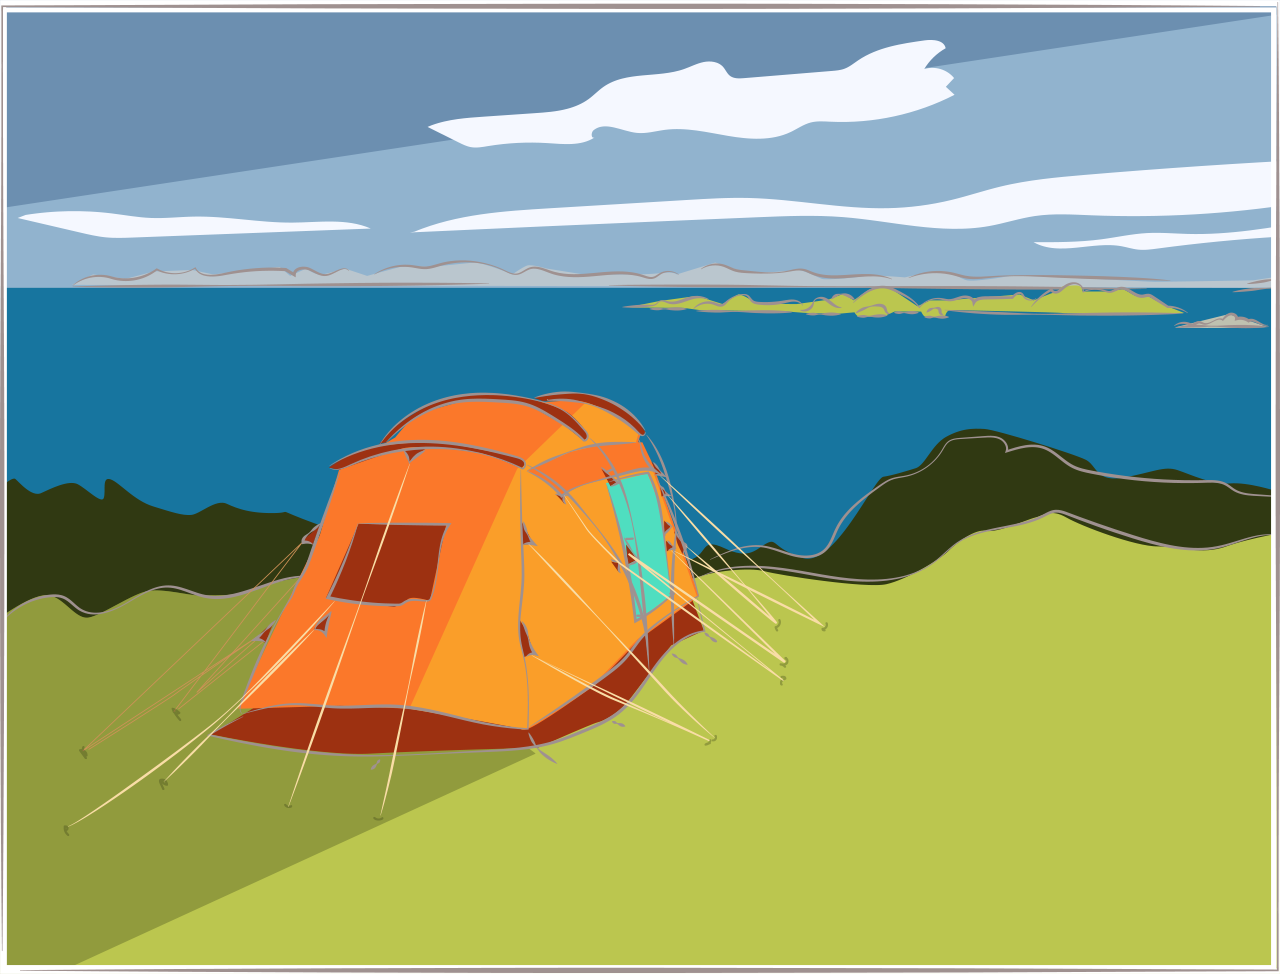 Illustration of a tent on a hill